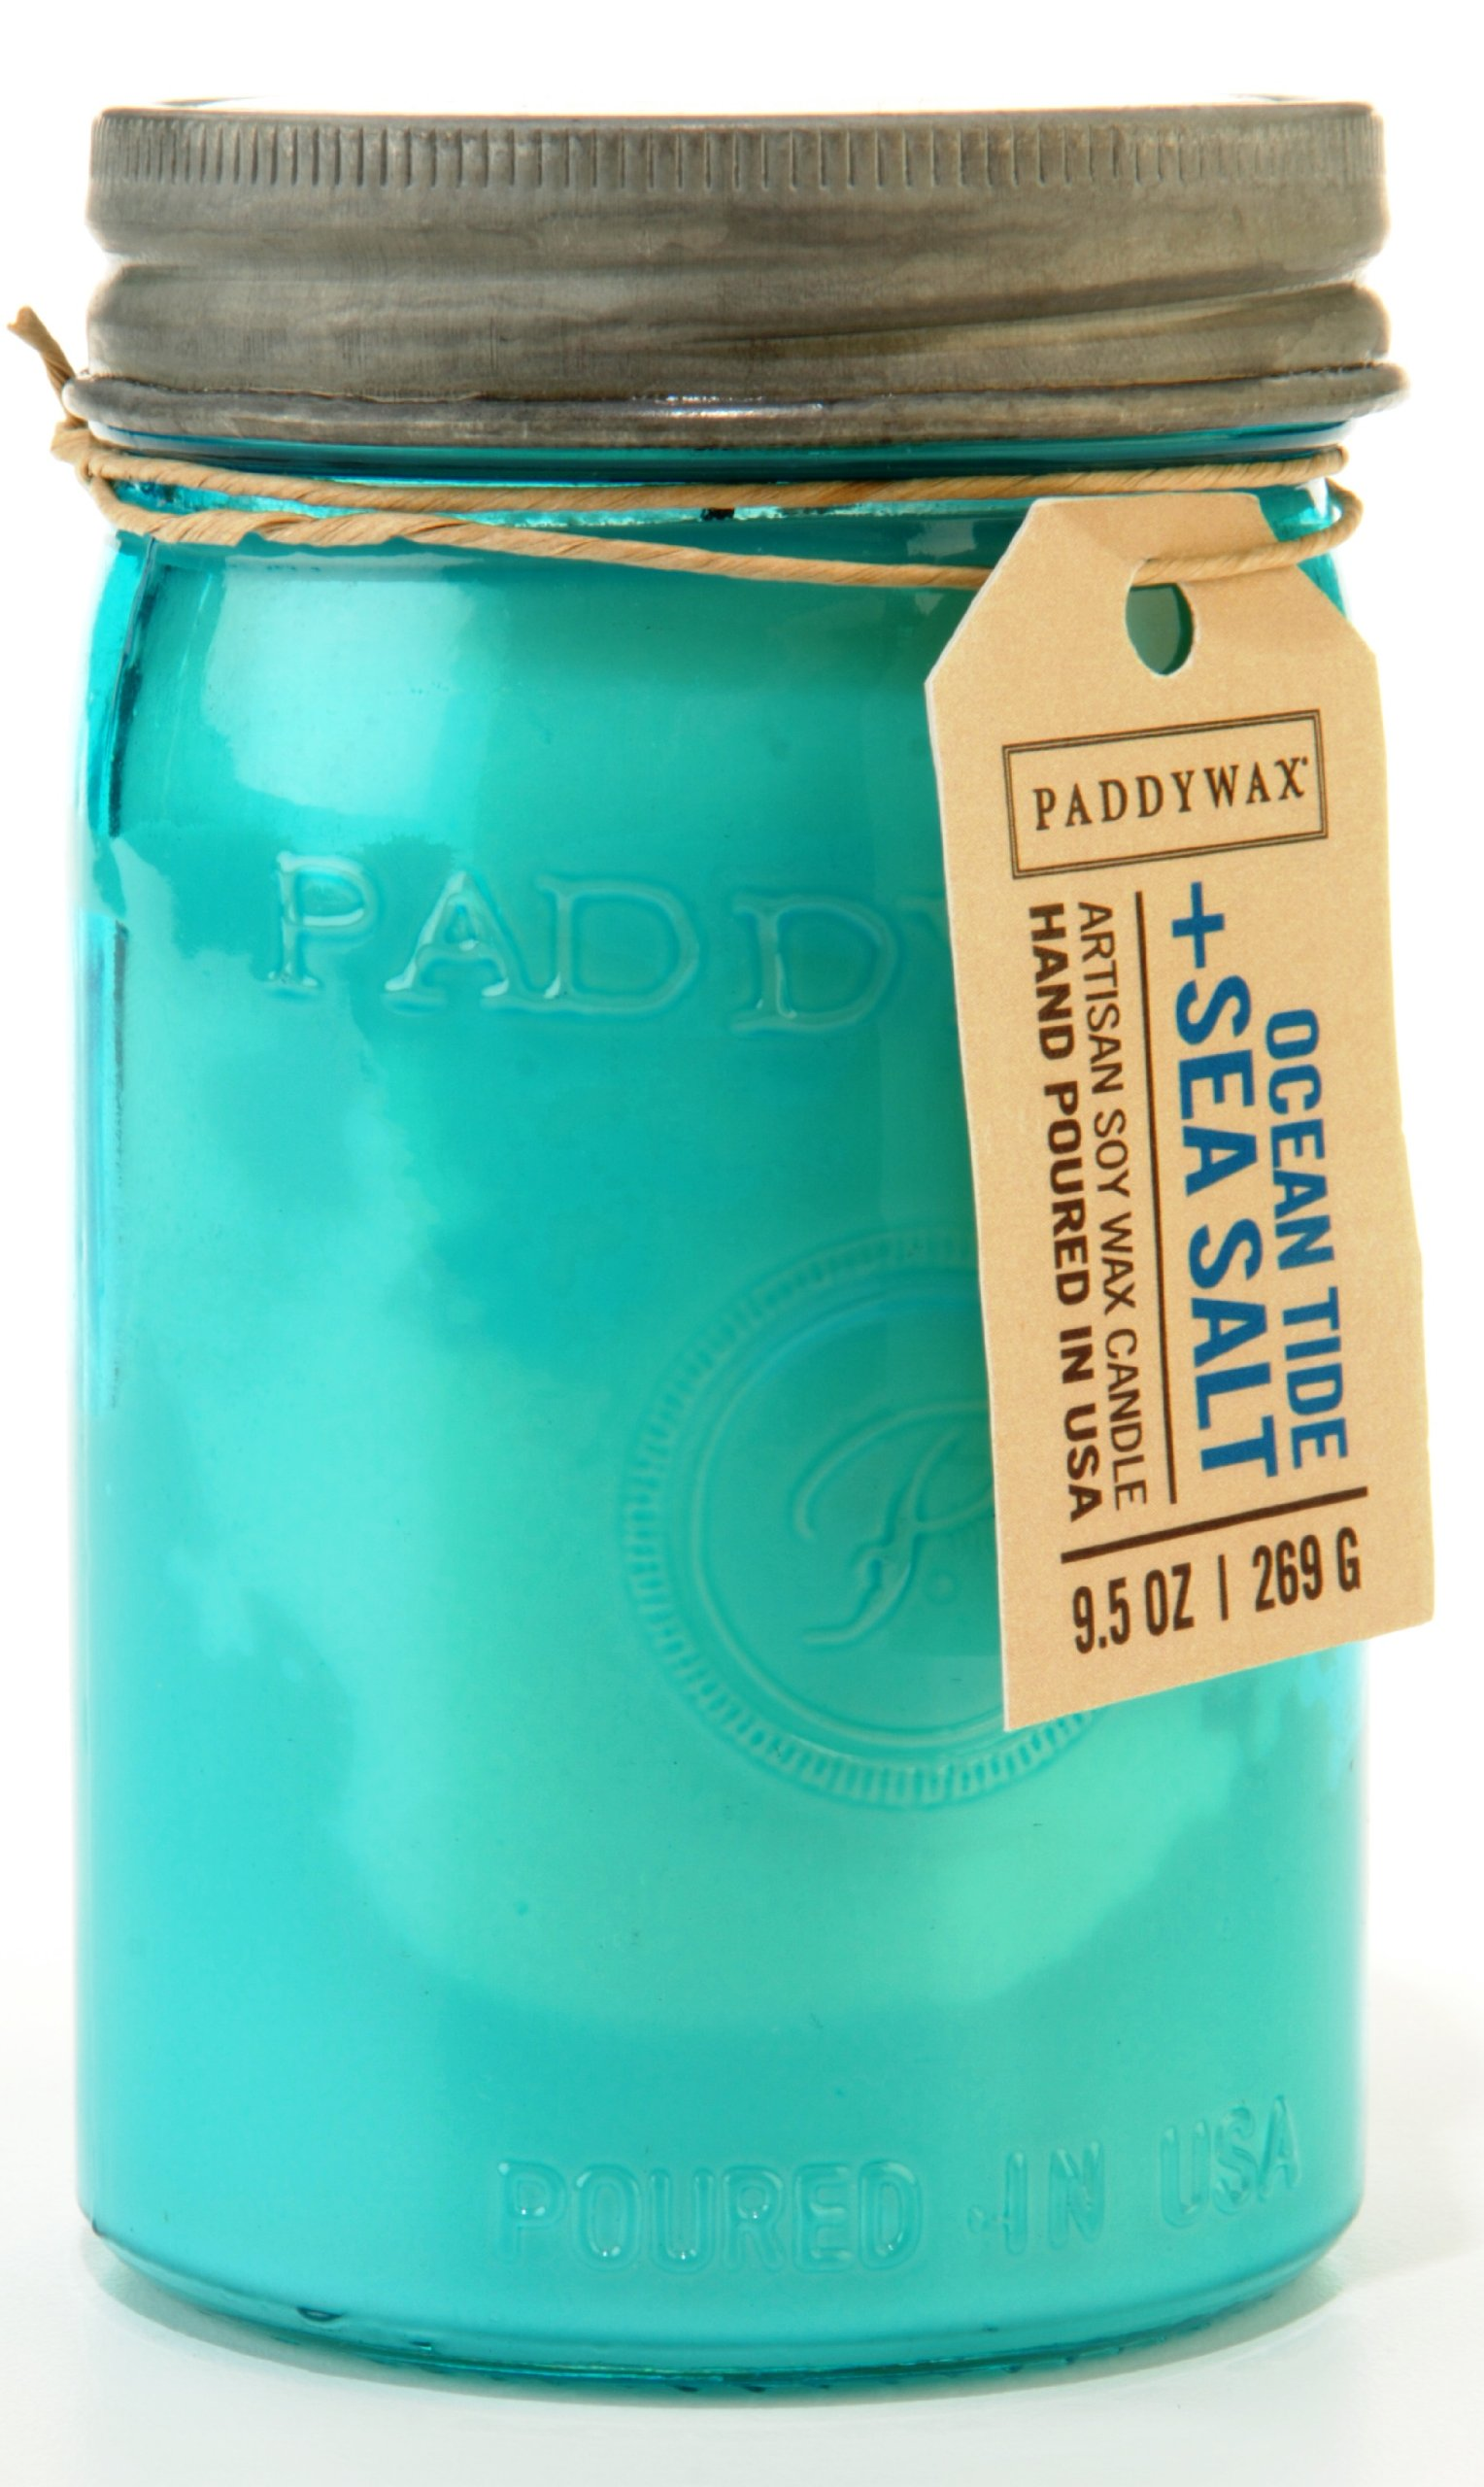 Paddywax Relish Collection Scented Soy Wax Jar Candle, 9.5-Ounce, Aqua Tide & Sea Salt